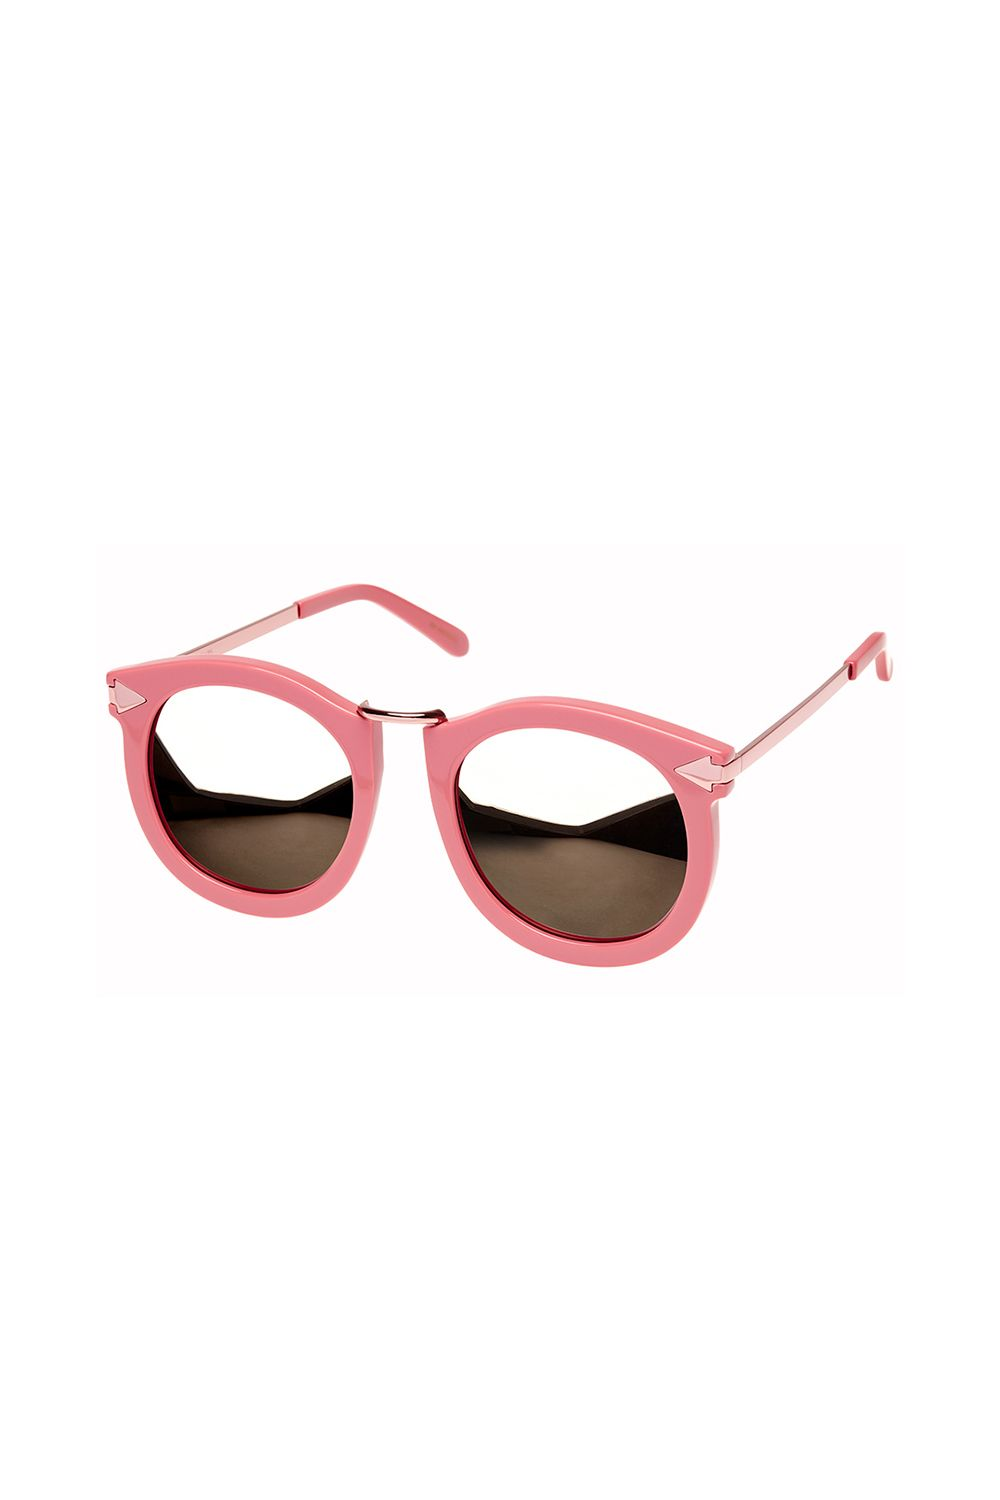 "<p>Pink and glossy, or Instagram's whole aesthetic.</p><p>$234, <a href=""https://www.karenwalker.com/collections/all-eyewear-collections/super-lunar-rose-pink-sgkas1601435/rose-pink"" target=""_blank"" data-tracking-id=""recirc-text-link"">karenwalker.com</a>.</p>"